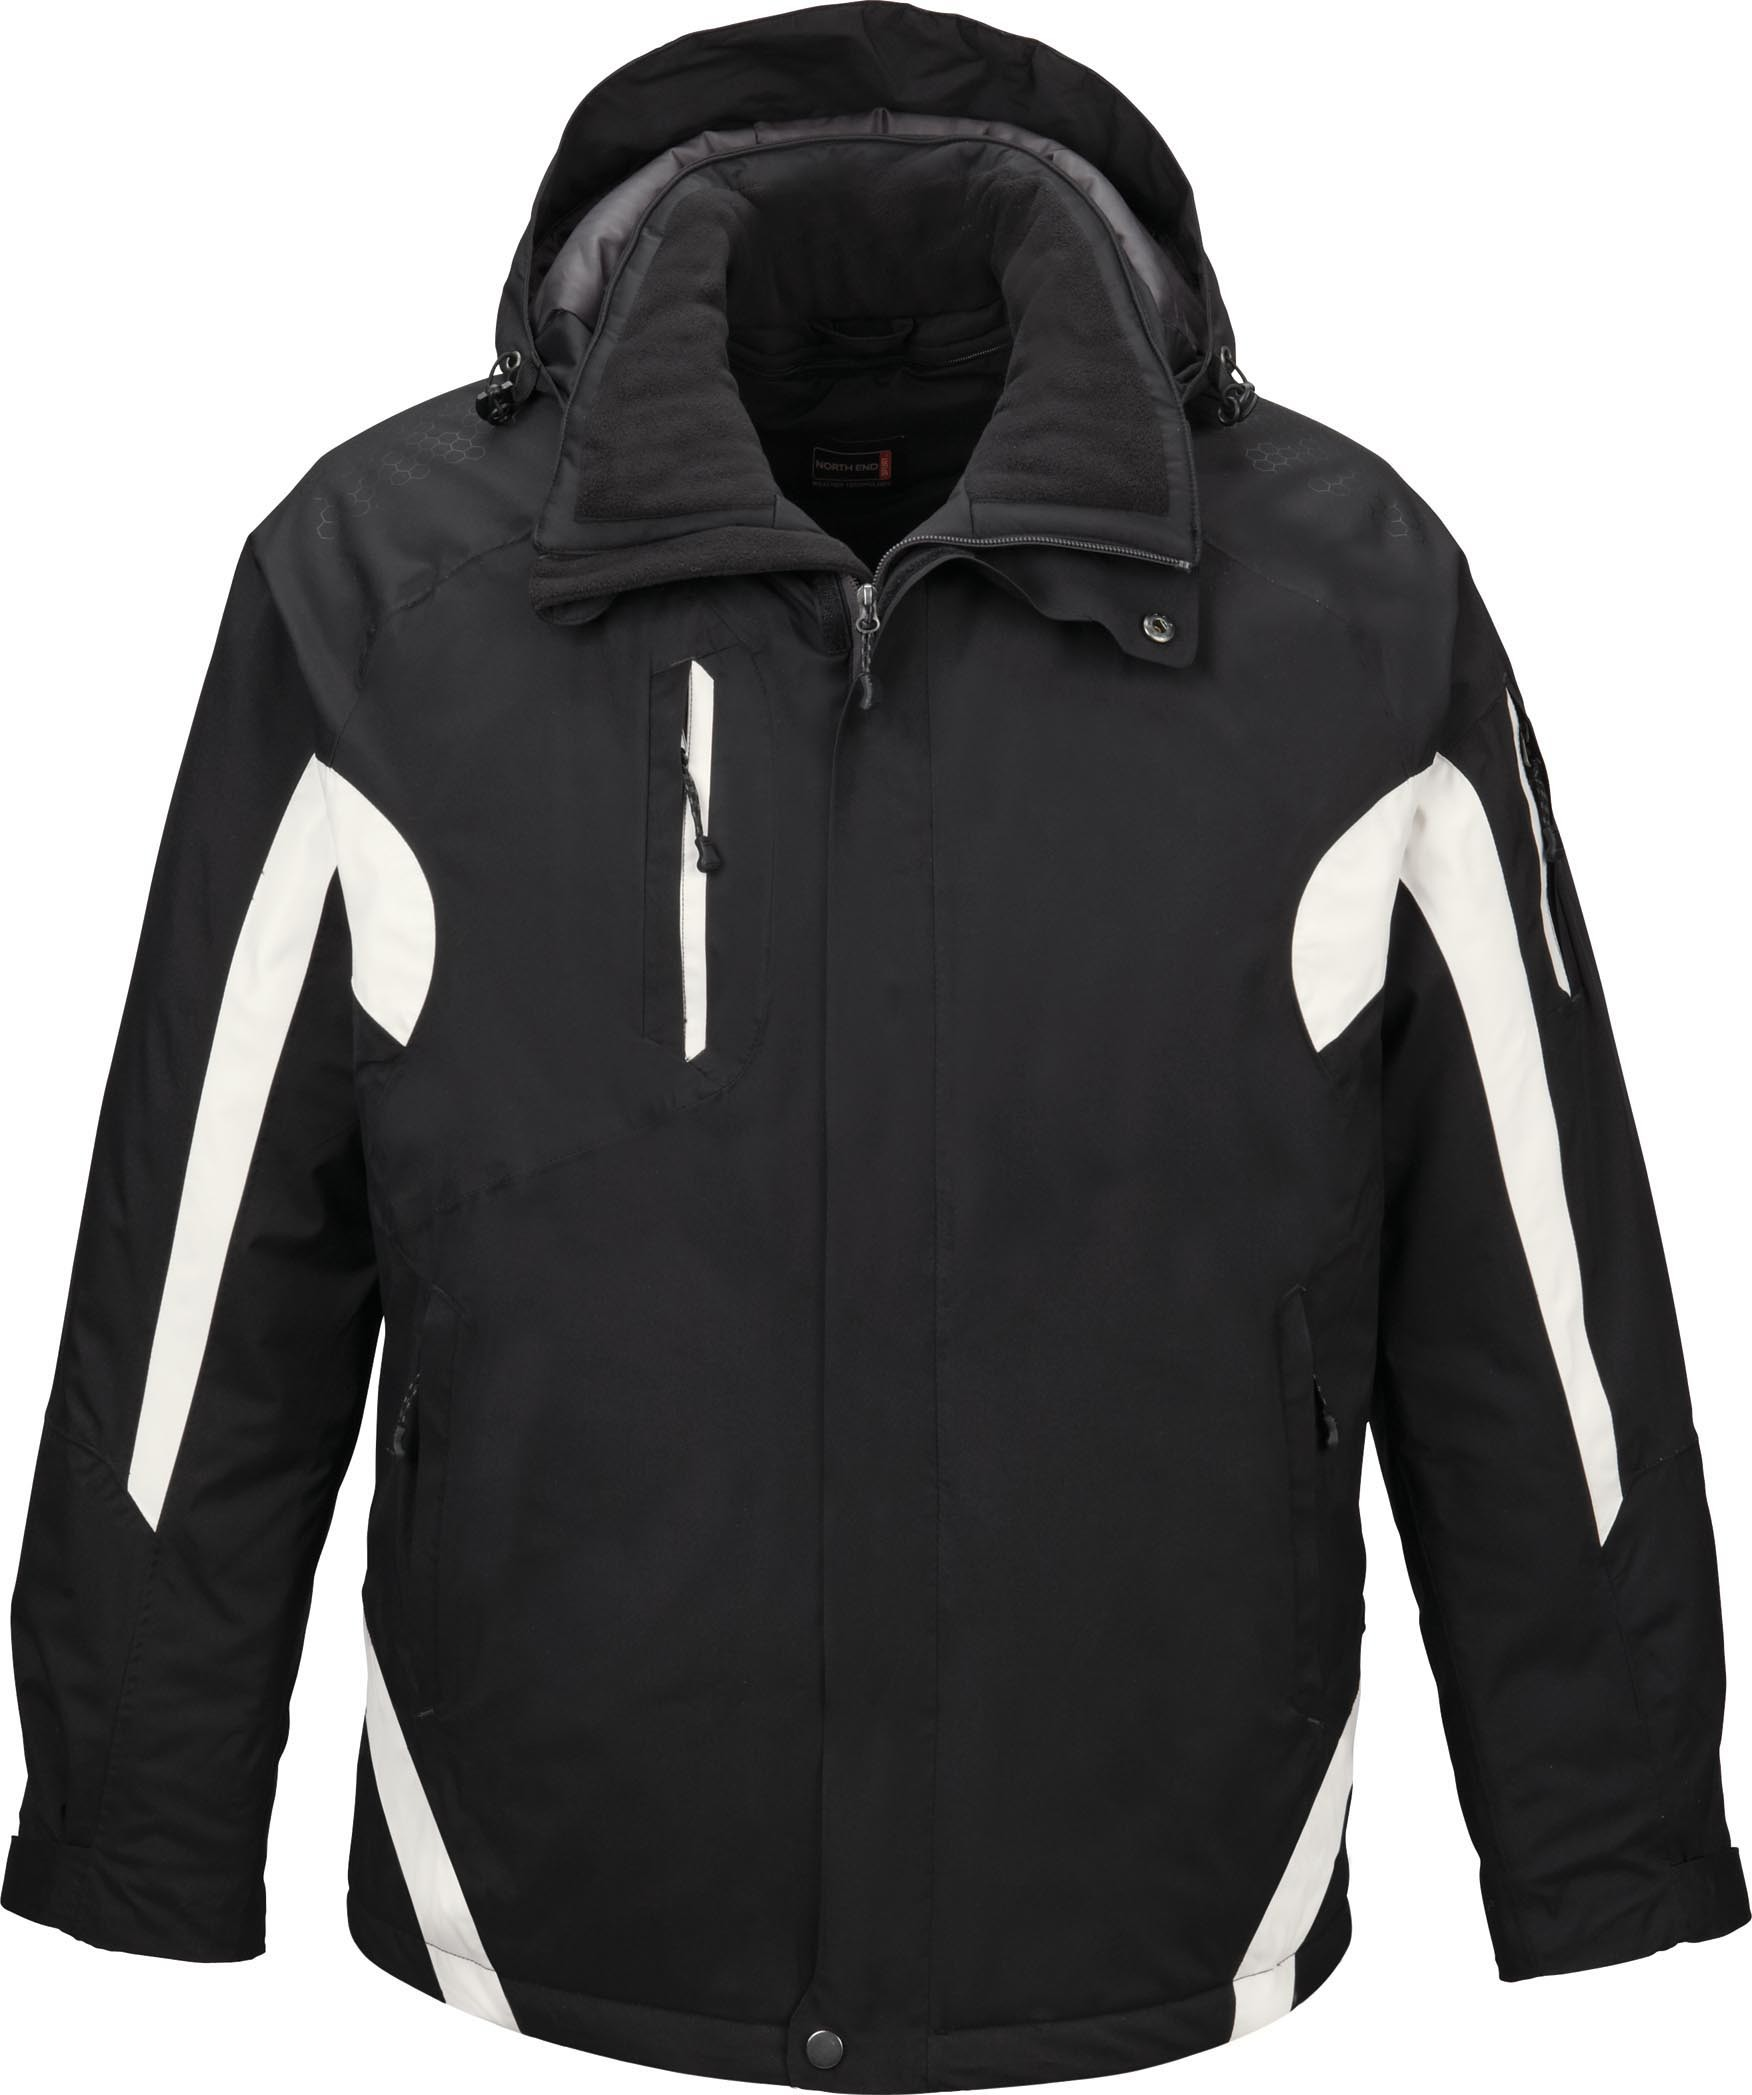 Ash City UTK 3 Warm.Logik 88664 - Apex Men's Insulated ...